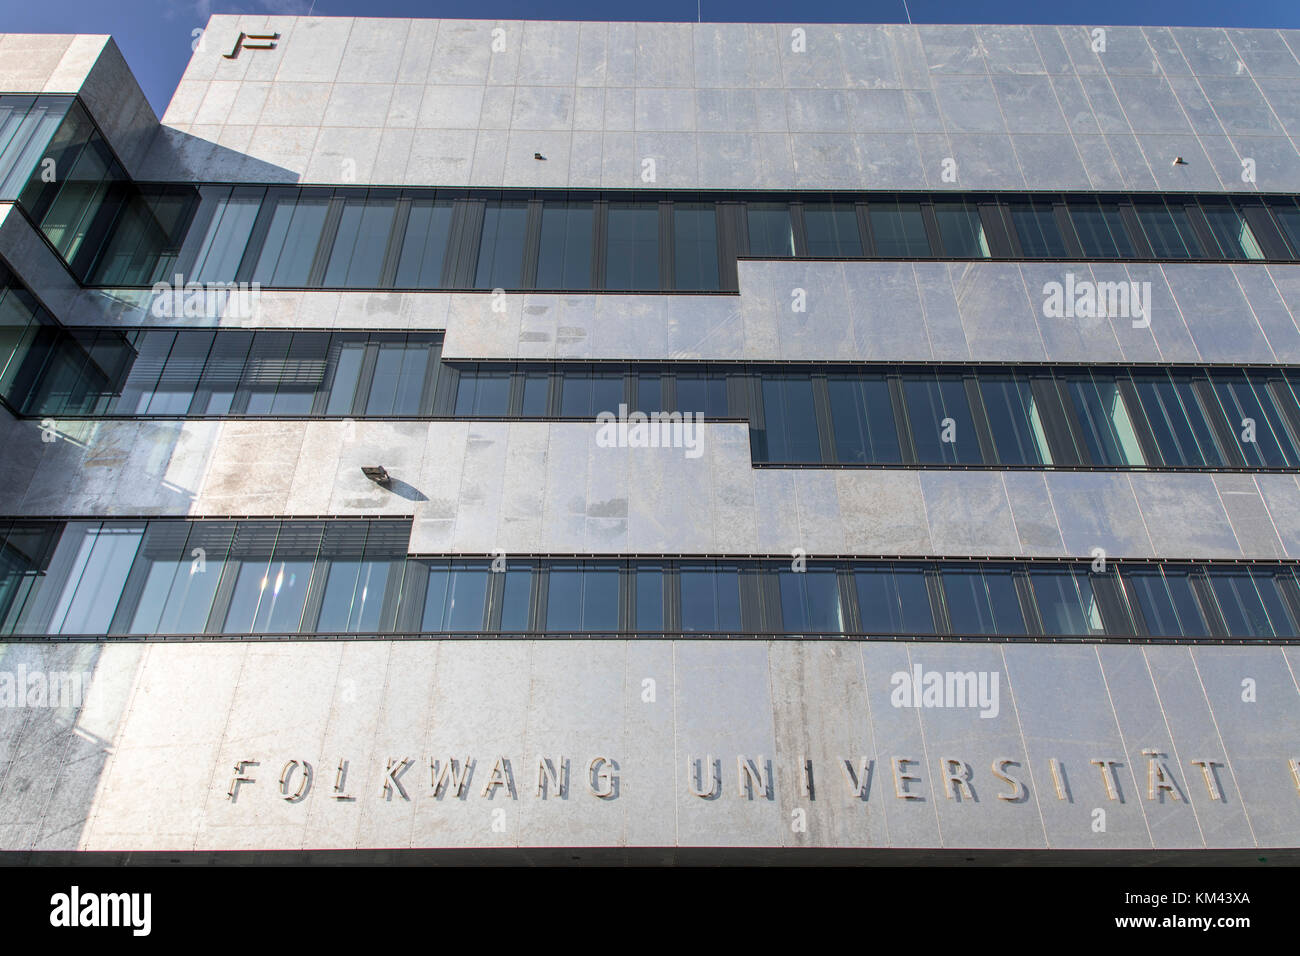 New building of the Folkwang University of the Arts, on the grounds of the Zeche Zollverein colliery in Essen, Germany - Stock Image